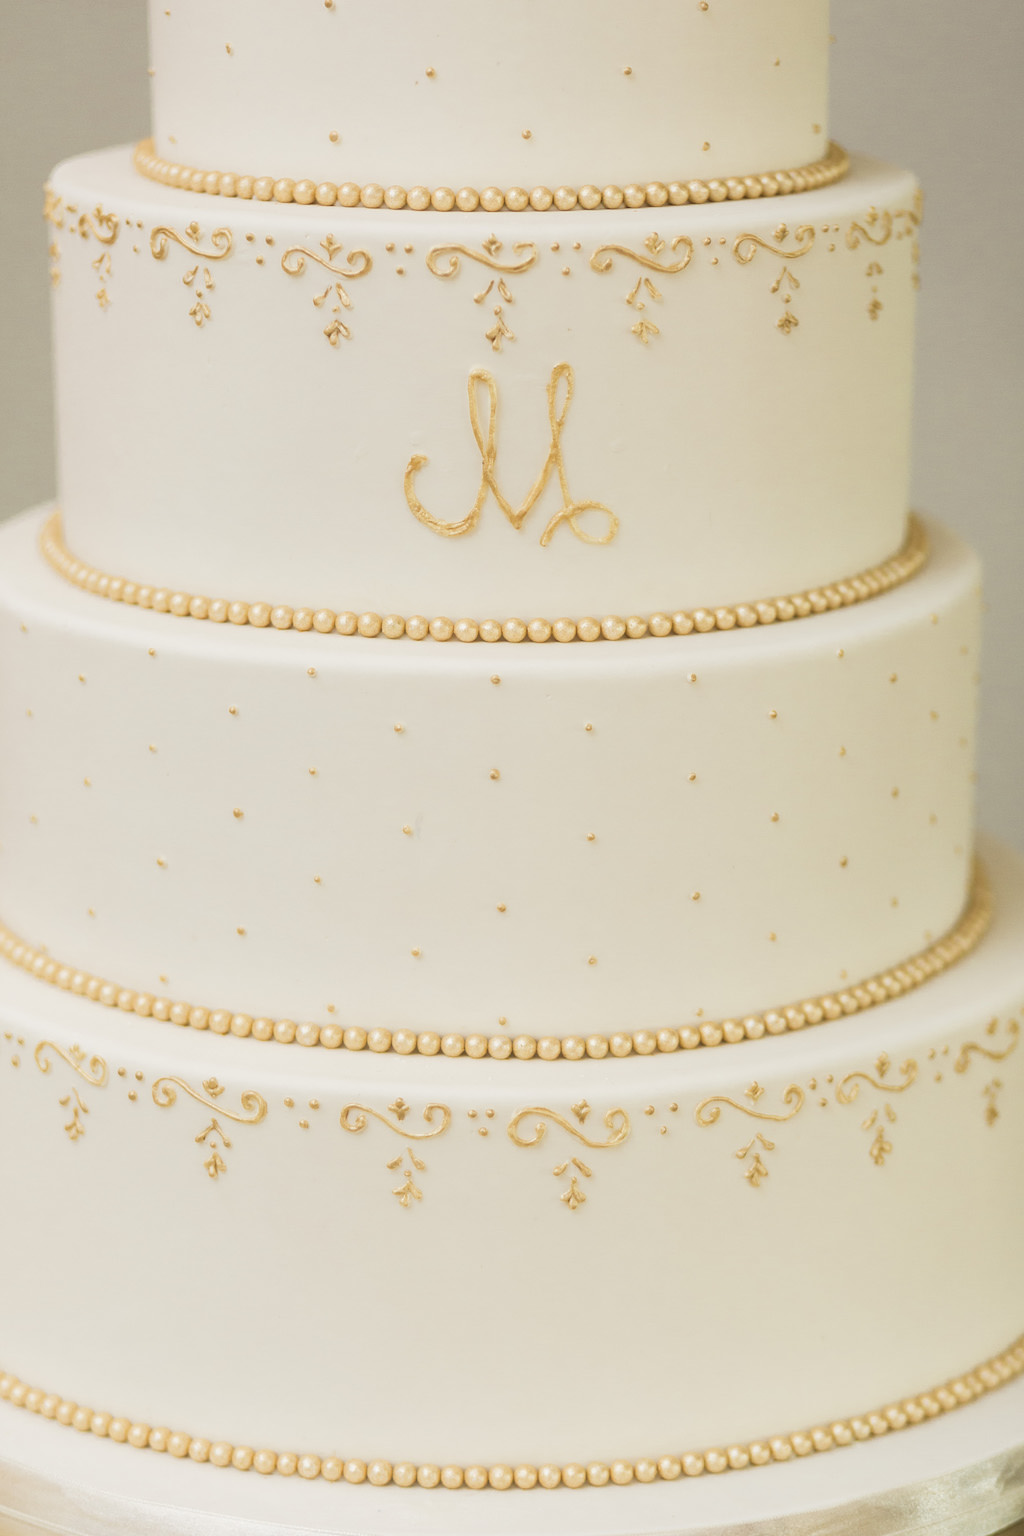 Tiered Classic White Wedding Cake with Gold Dots, Gold Pearls, Gold Embellishments and Gold Letter Monogram Initials